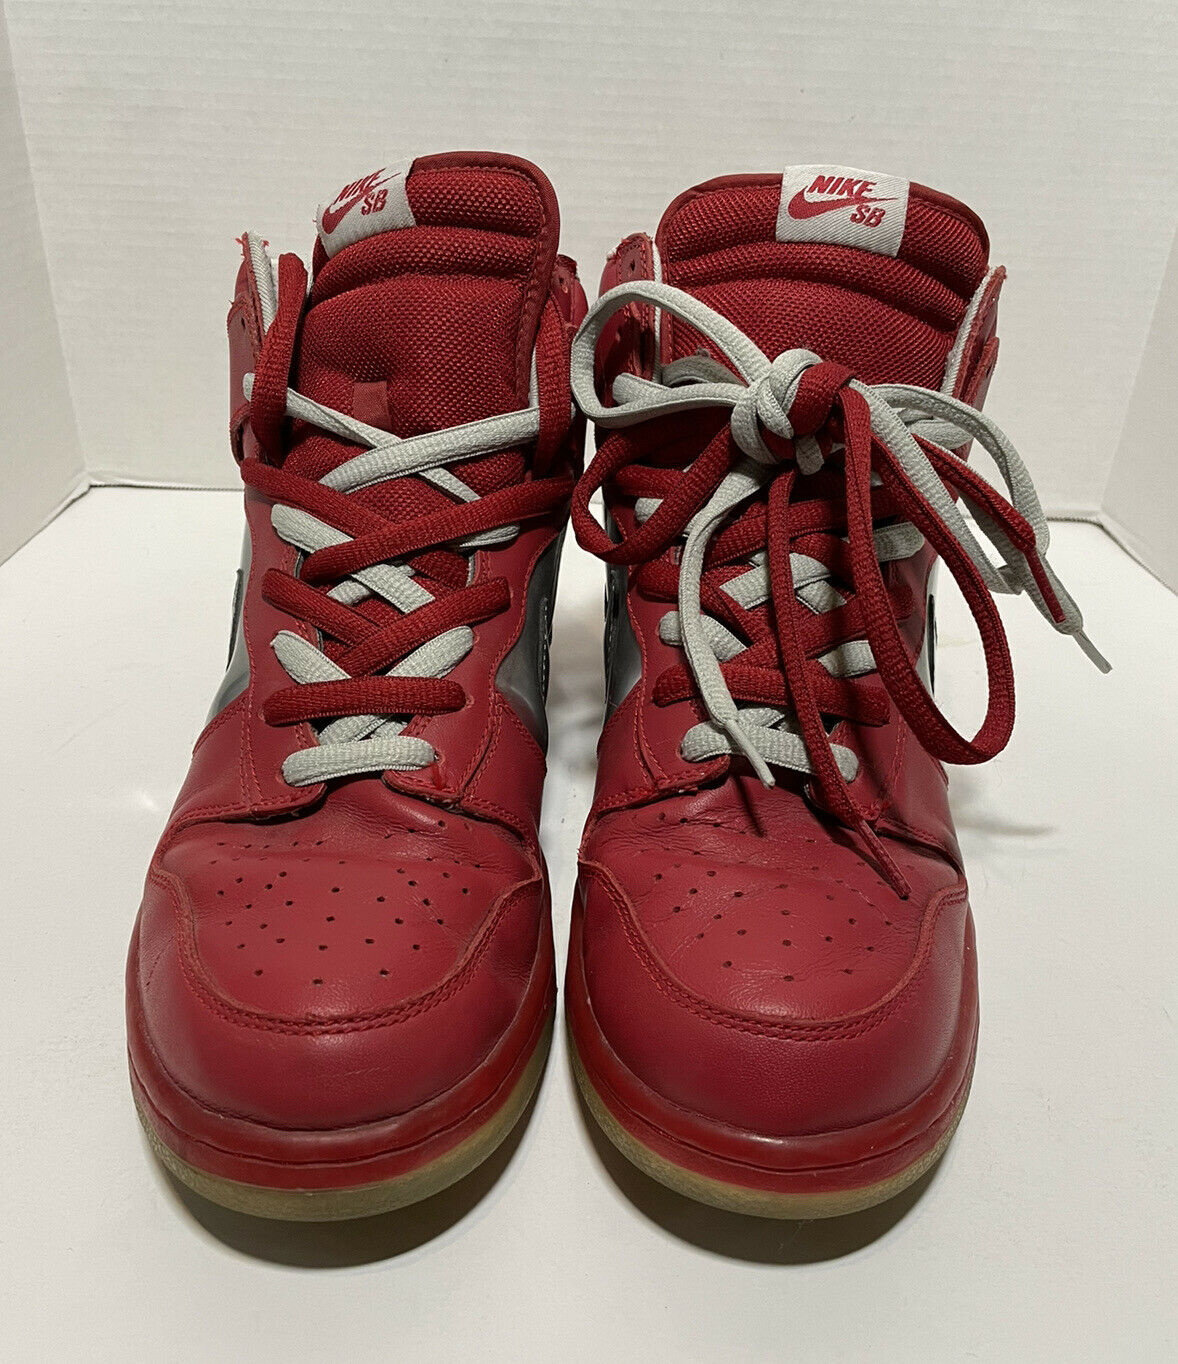 2006 Nike Mork And Mindy SB Dunk High Red/silver … - image 3